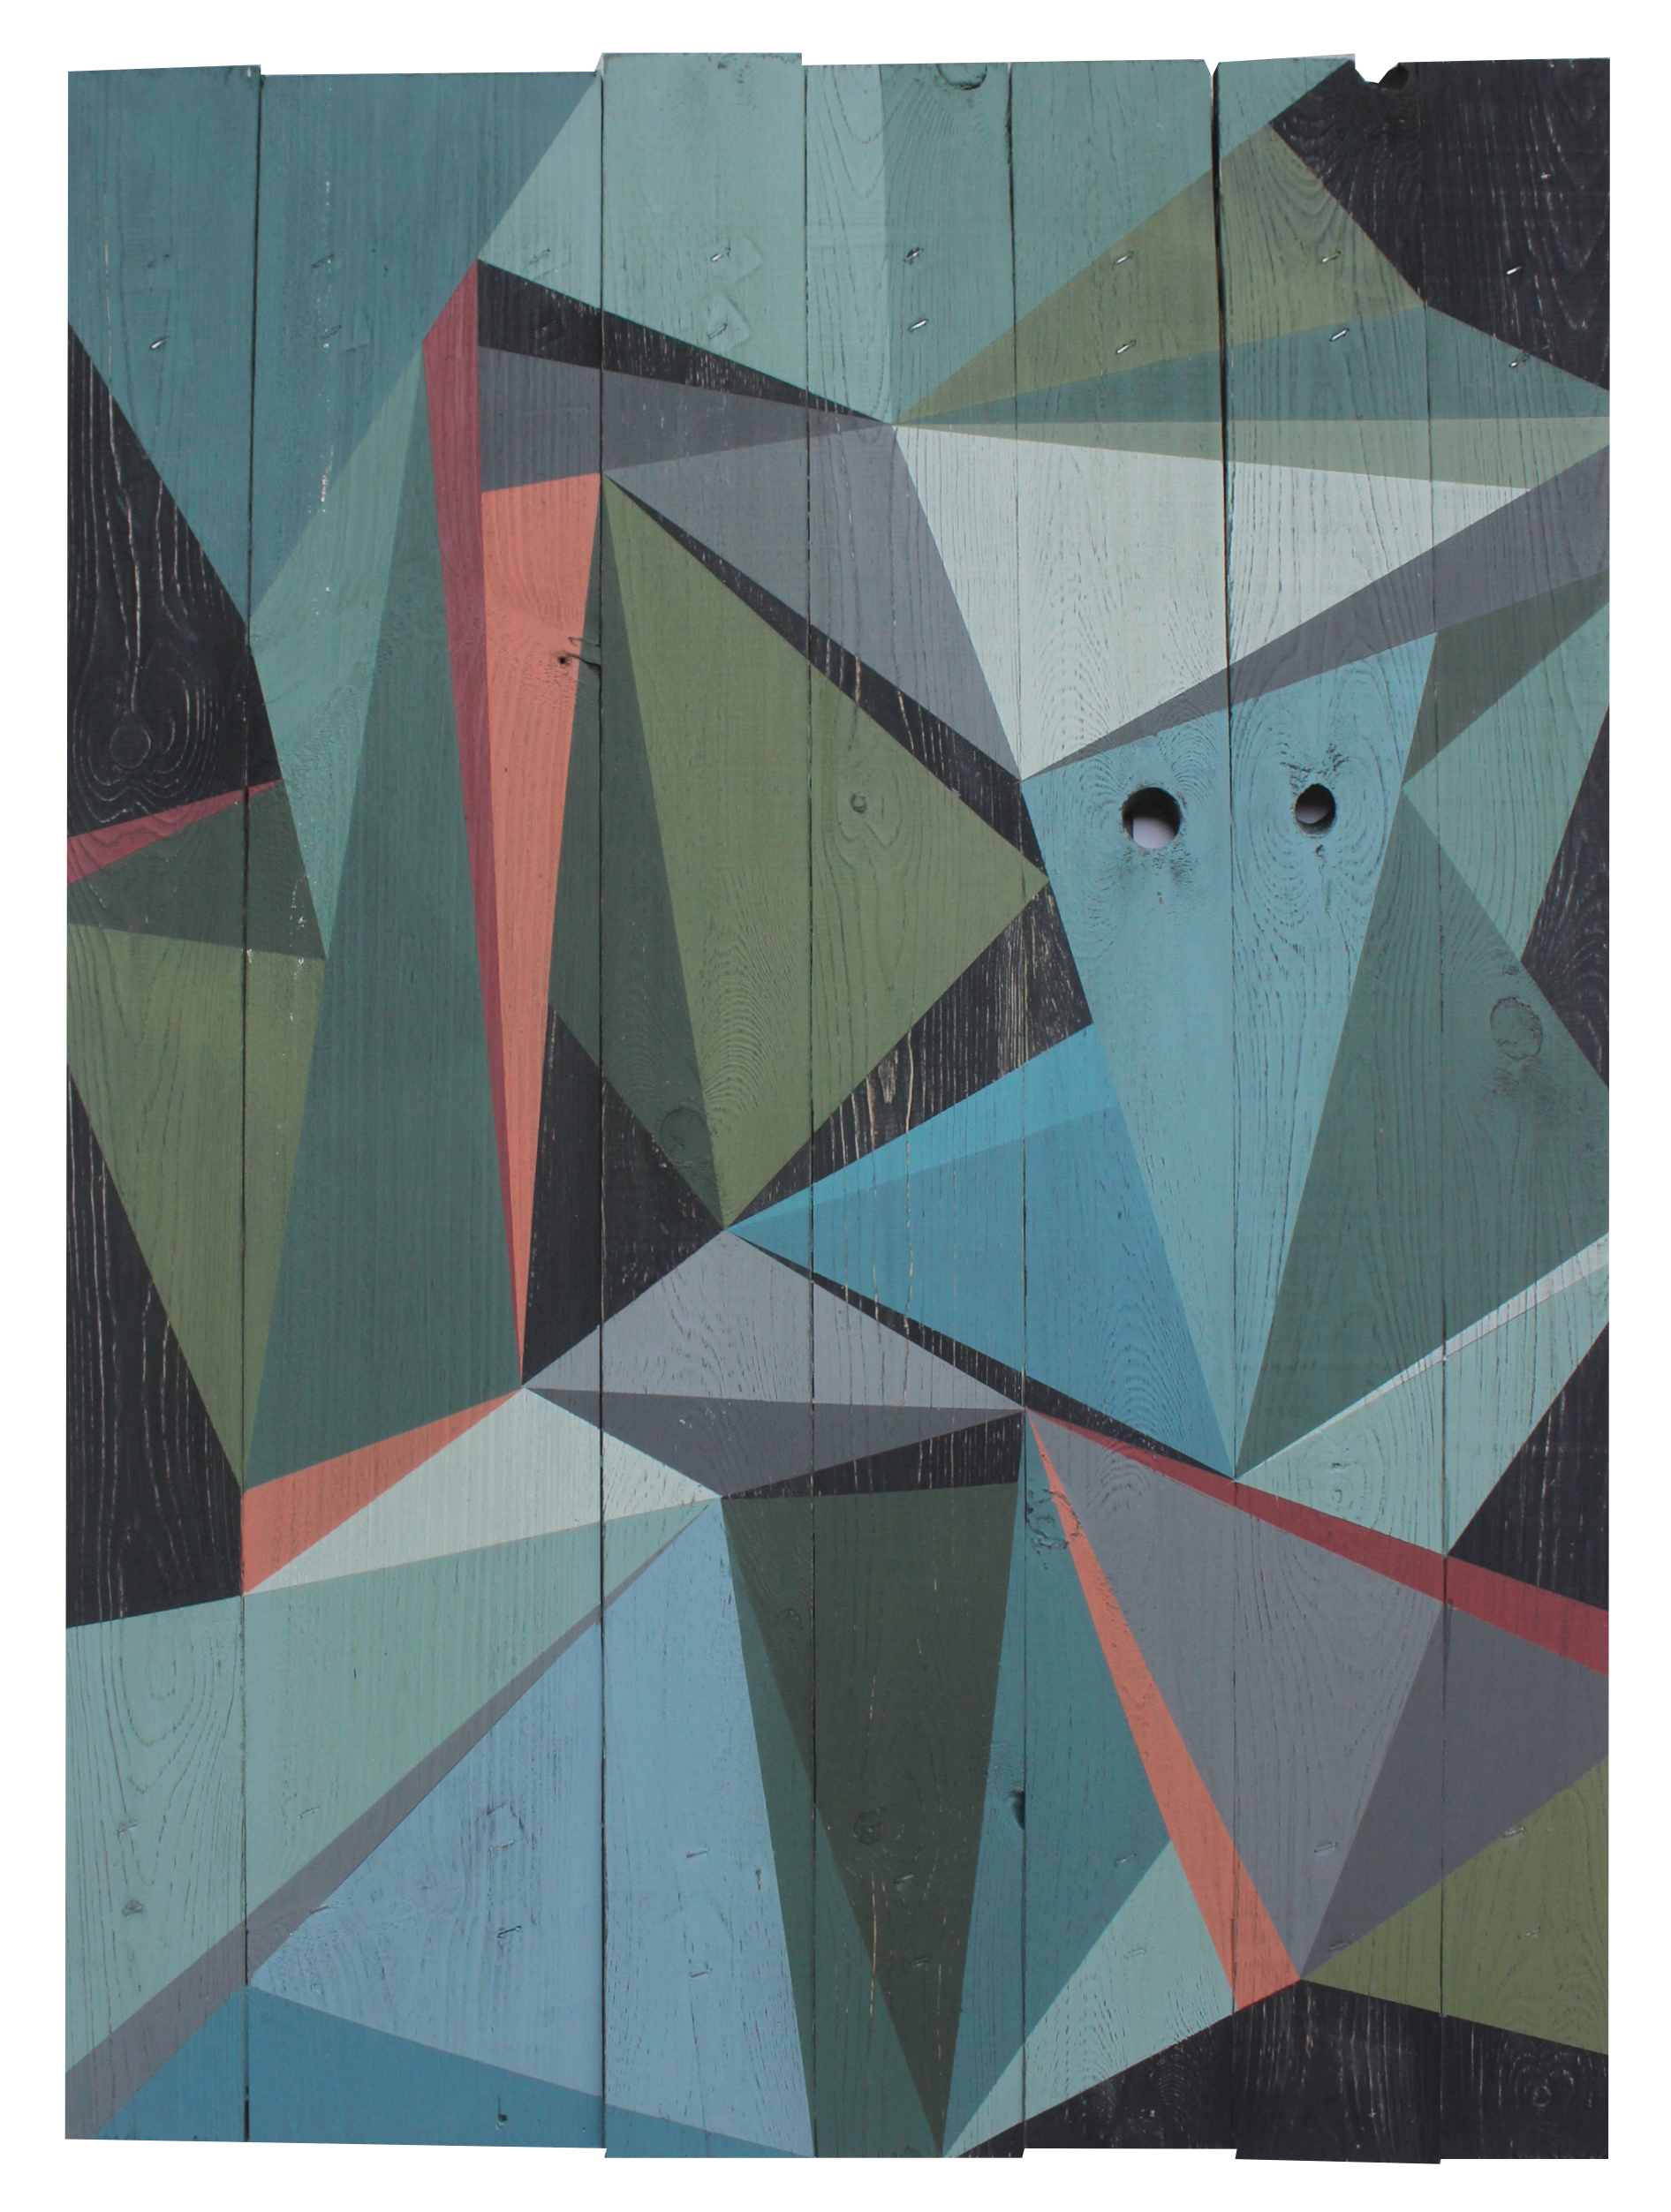 Colourlove. Geometric art on recyled wood. Acrylic on wood. By Henriette Fabricius